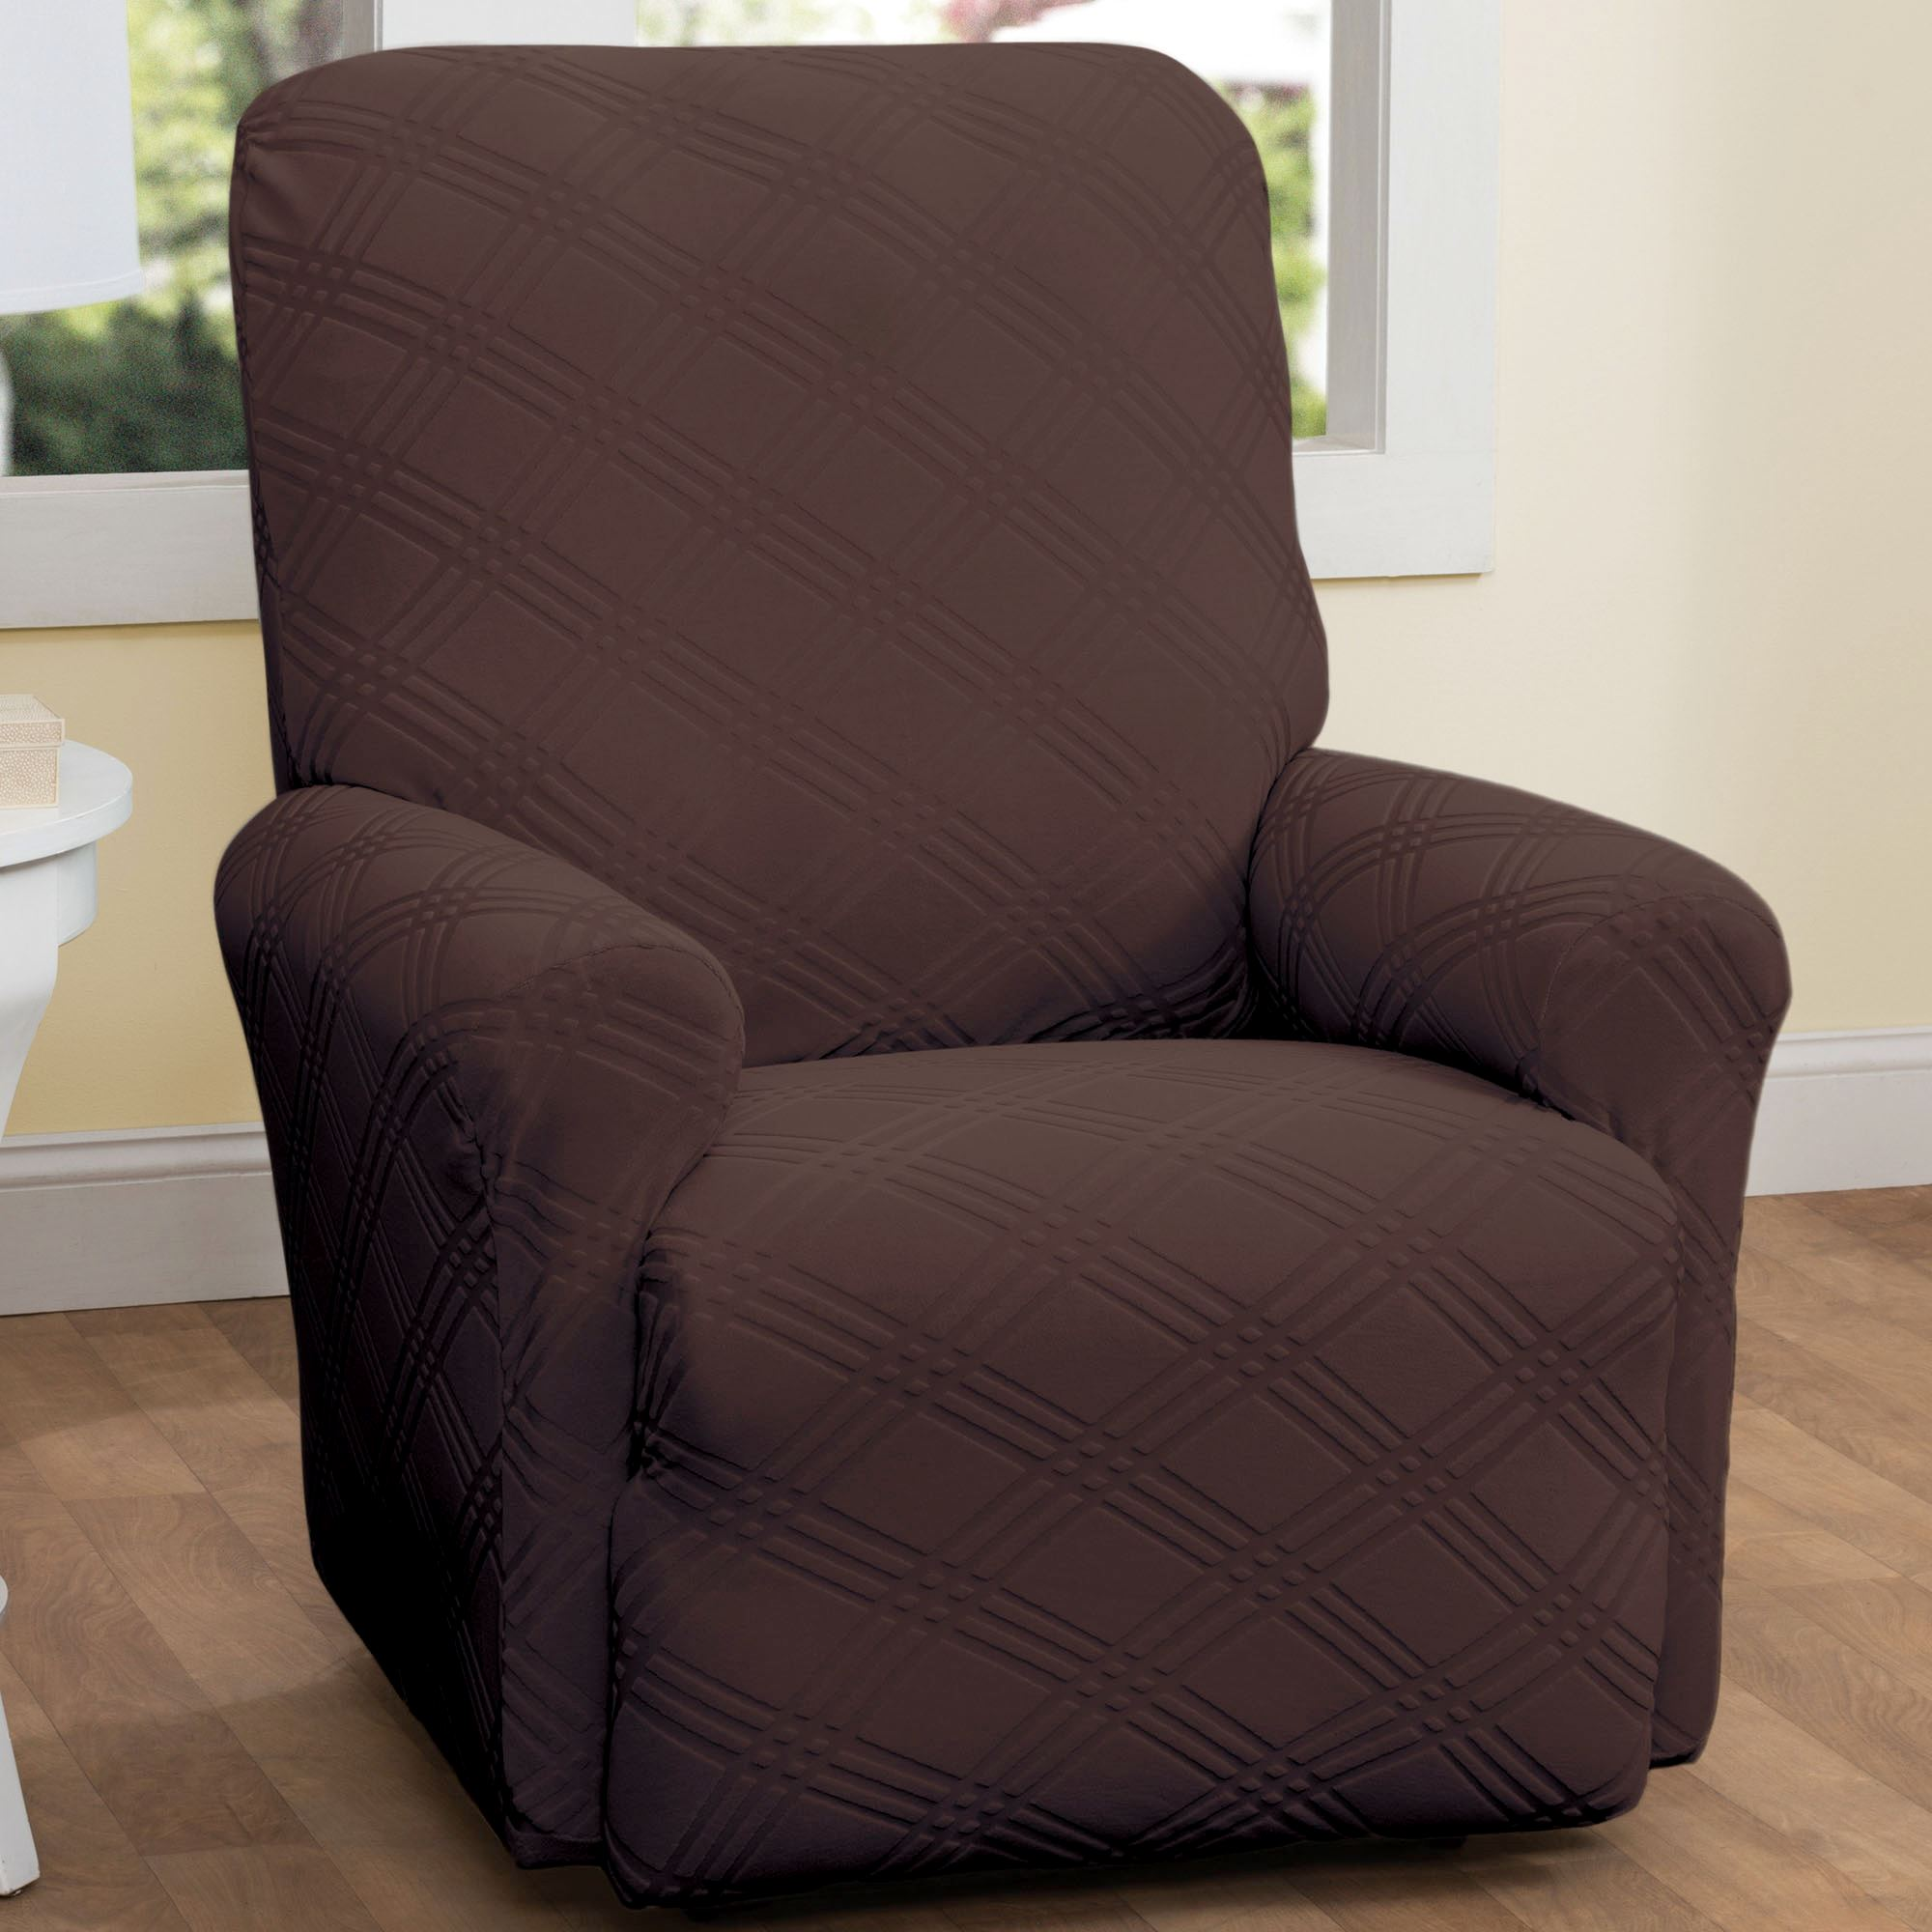 Double Diamond Stretch Slipcover Recliner